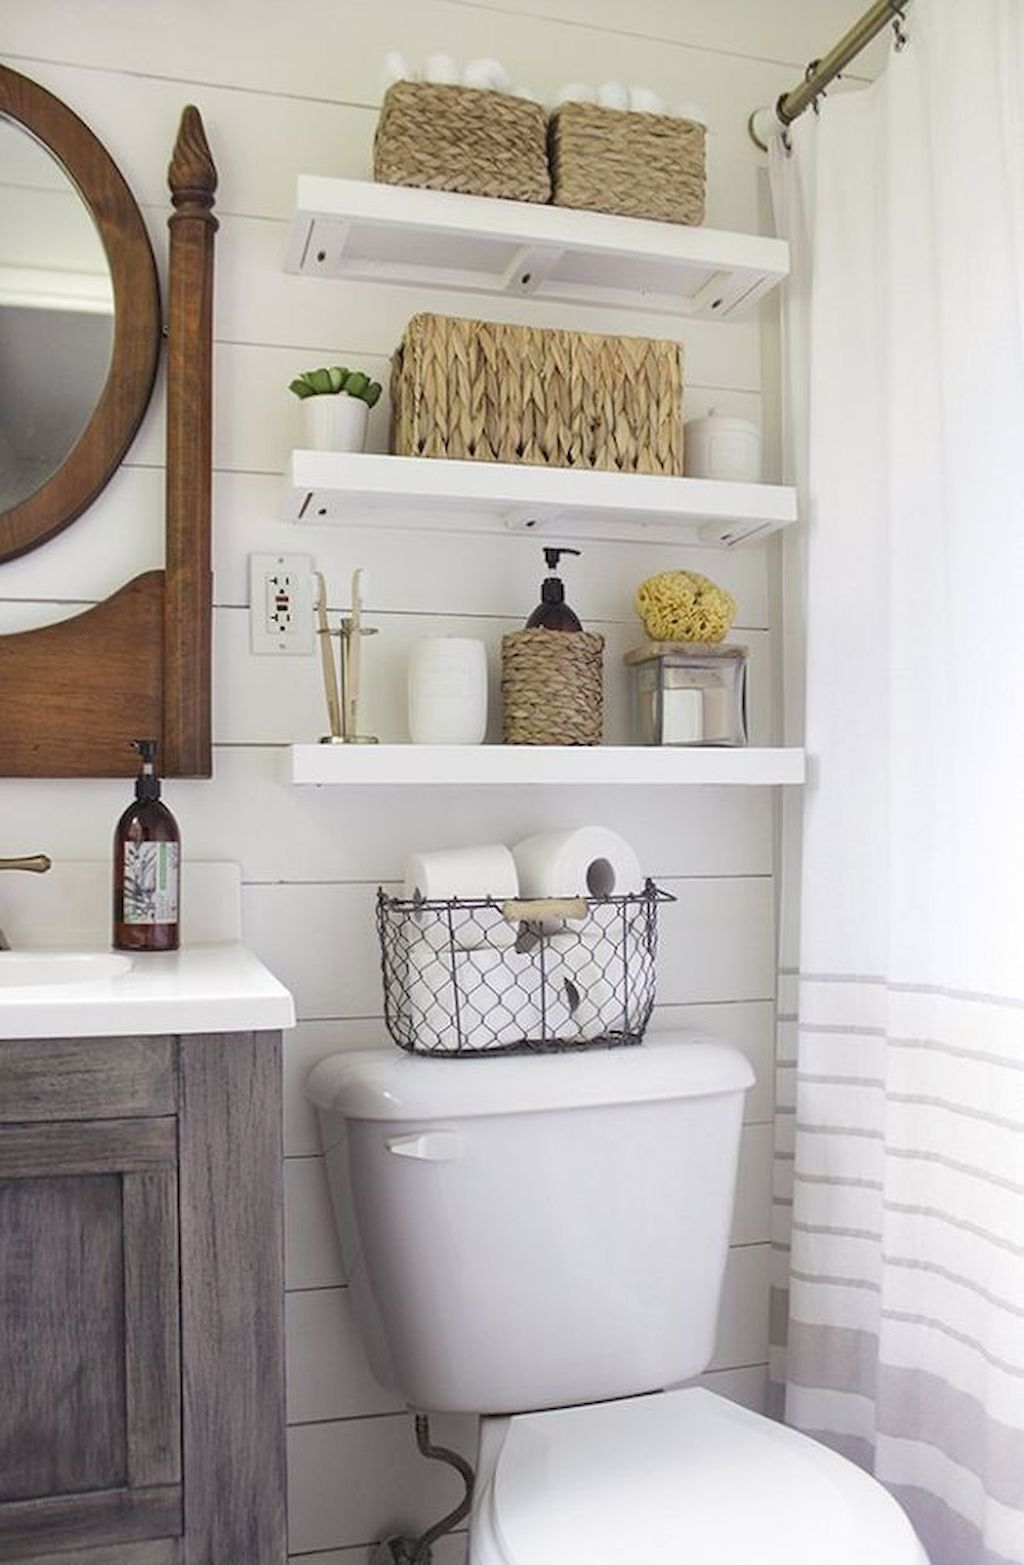 12 Inspirations For Home Improvement With Spanish Home Decorating Ideas: Cool 42 Cool Small Bathroom Remodel Ideas Https://decoralink.com/2017/12/14/42-cool-small